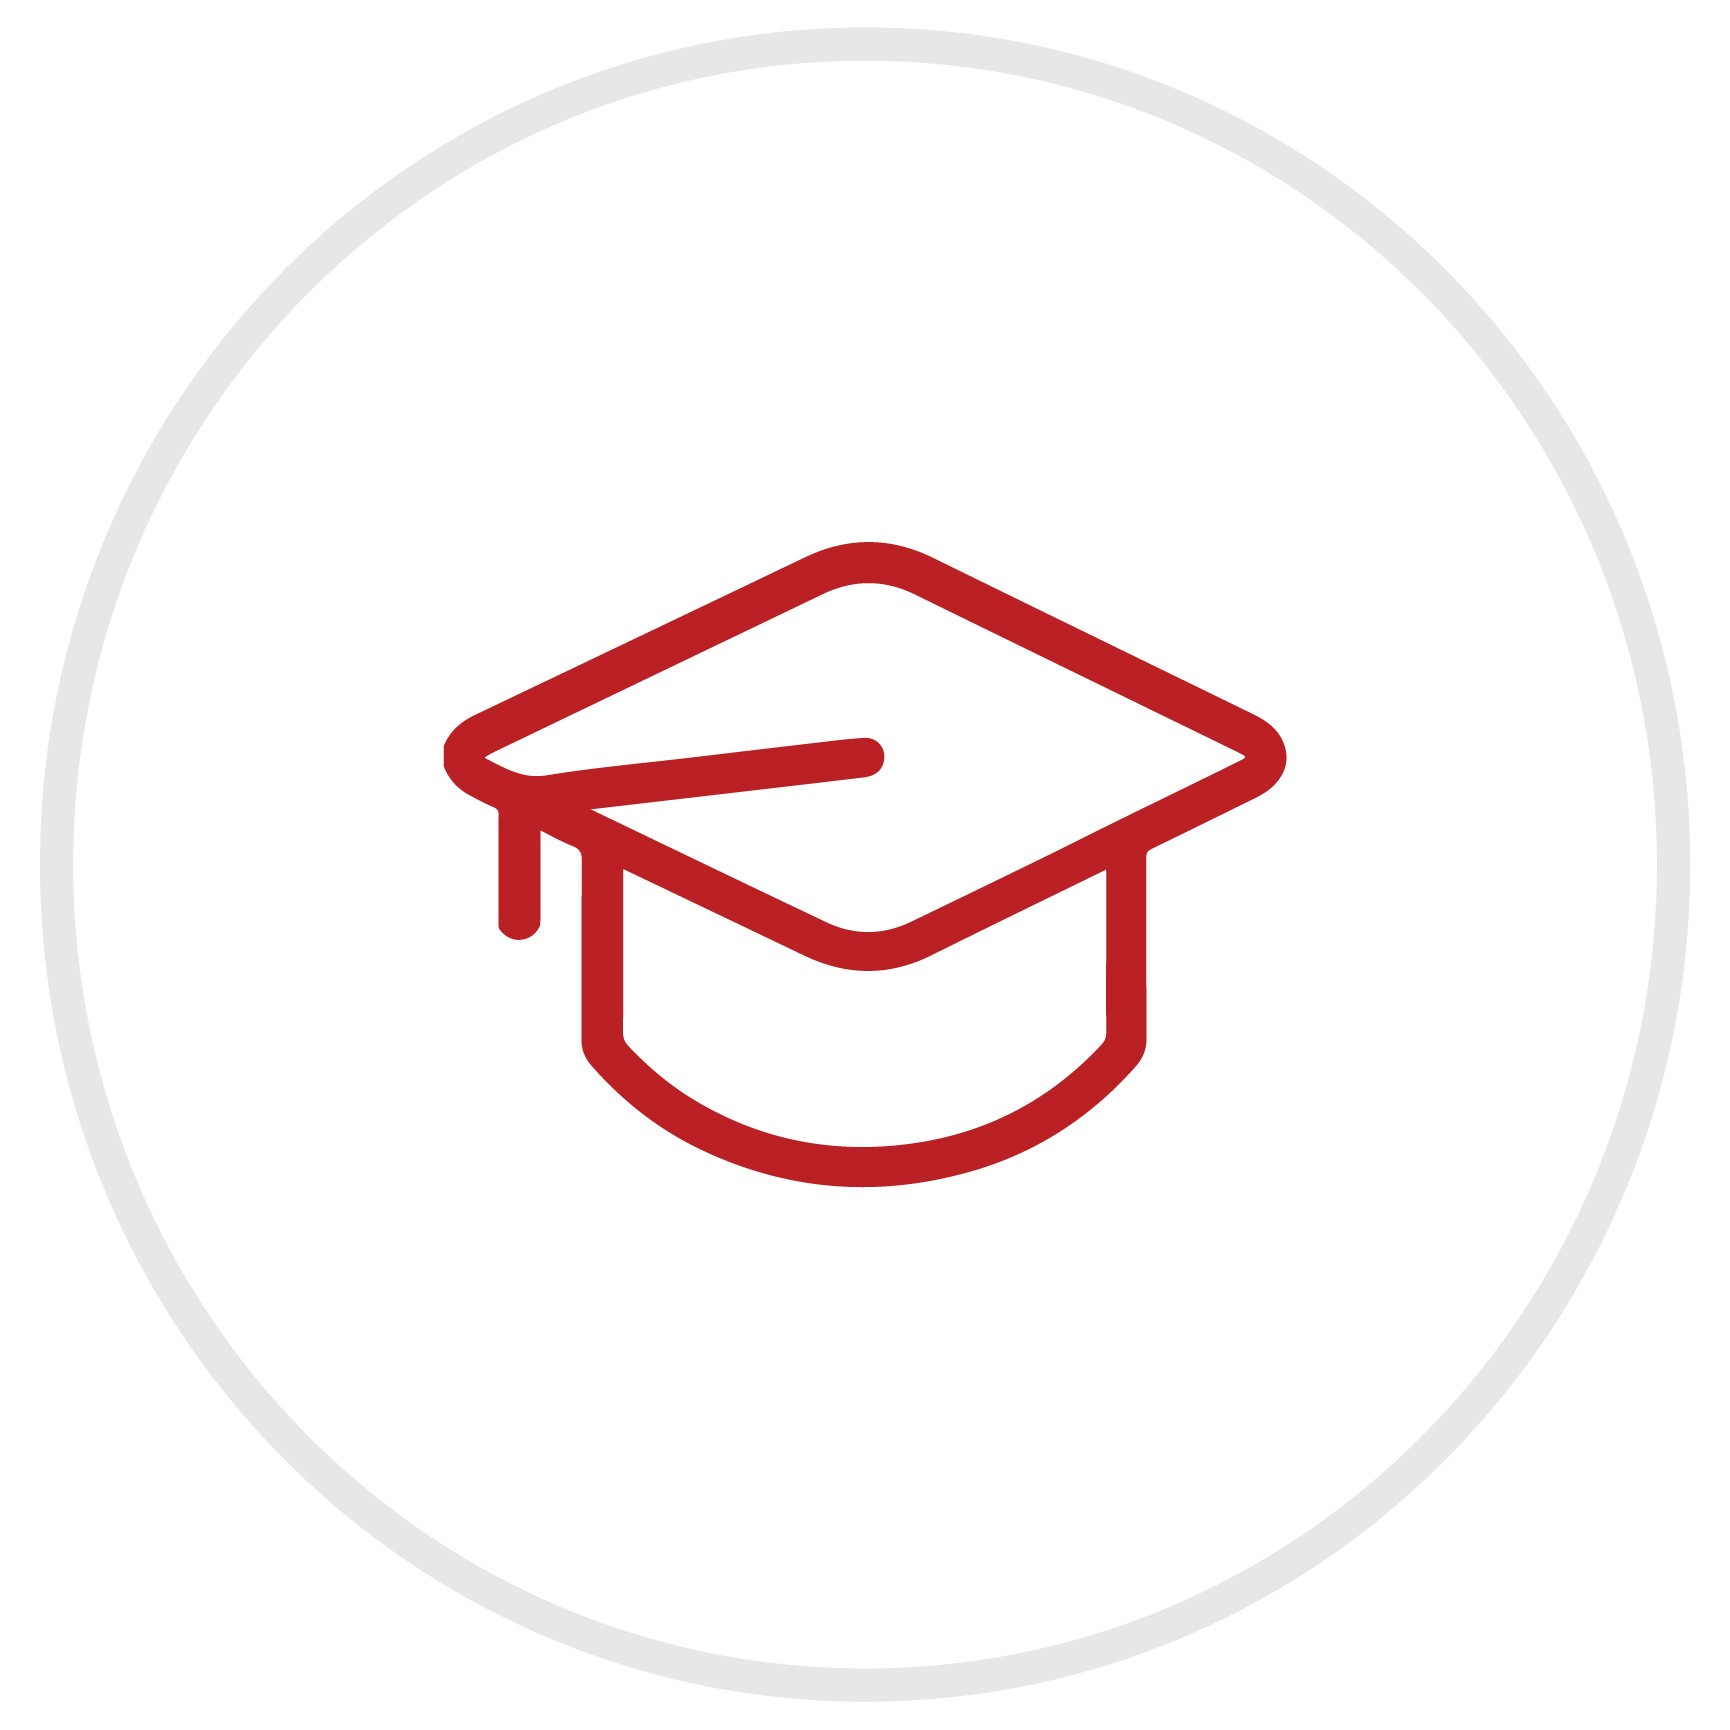 Icon of a graduation hat.